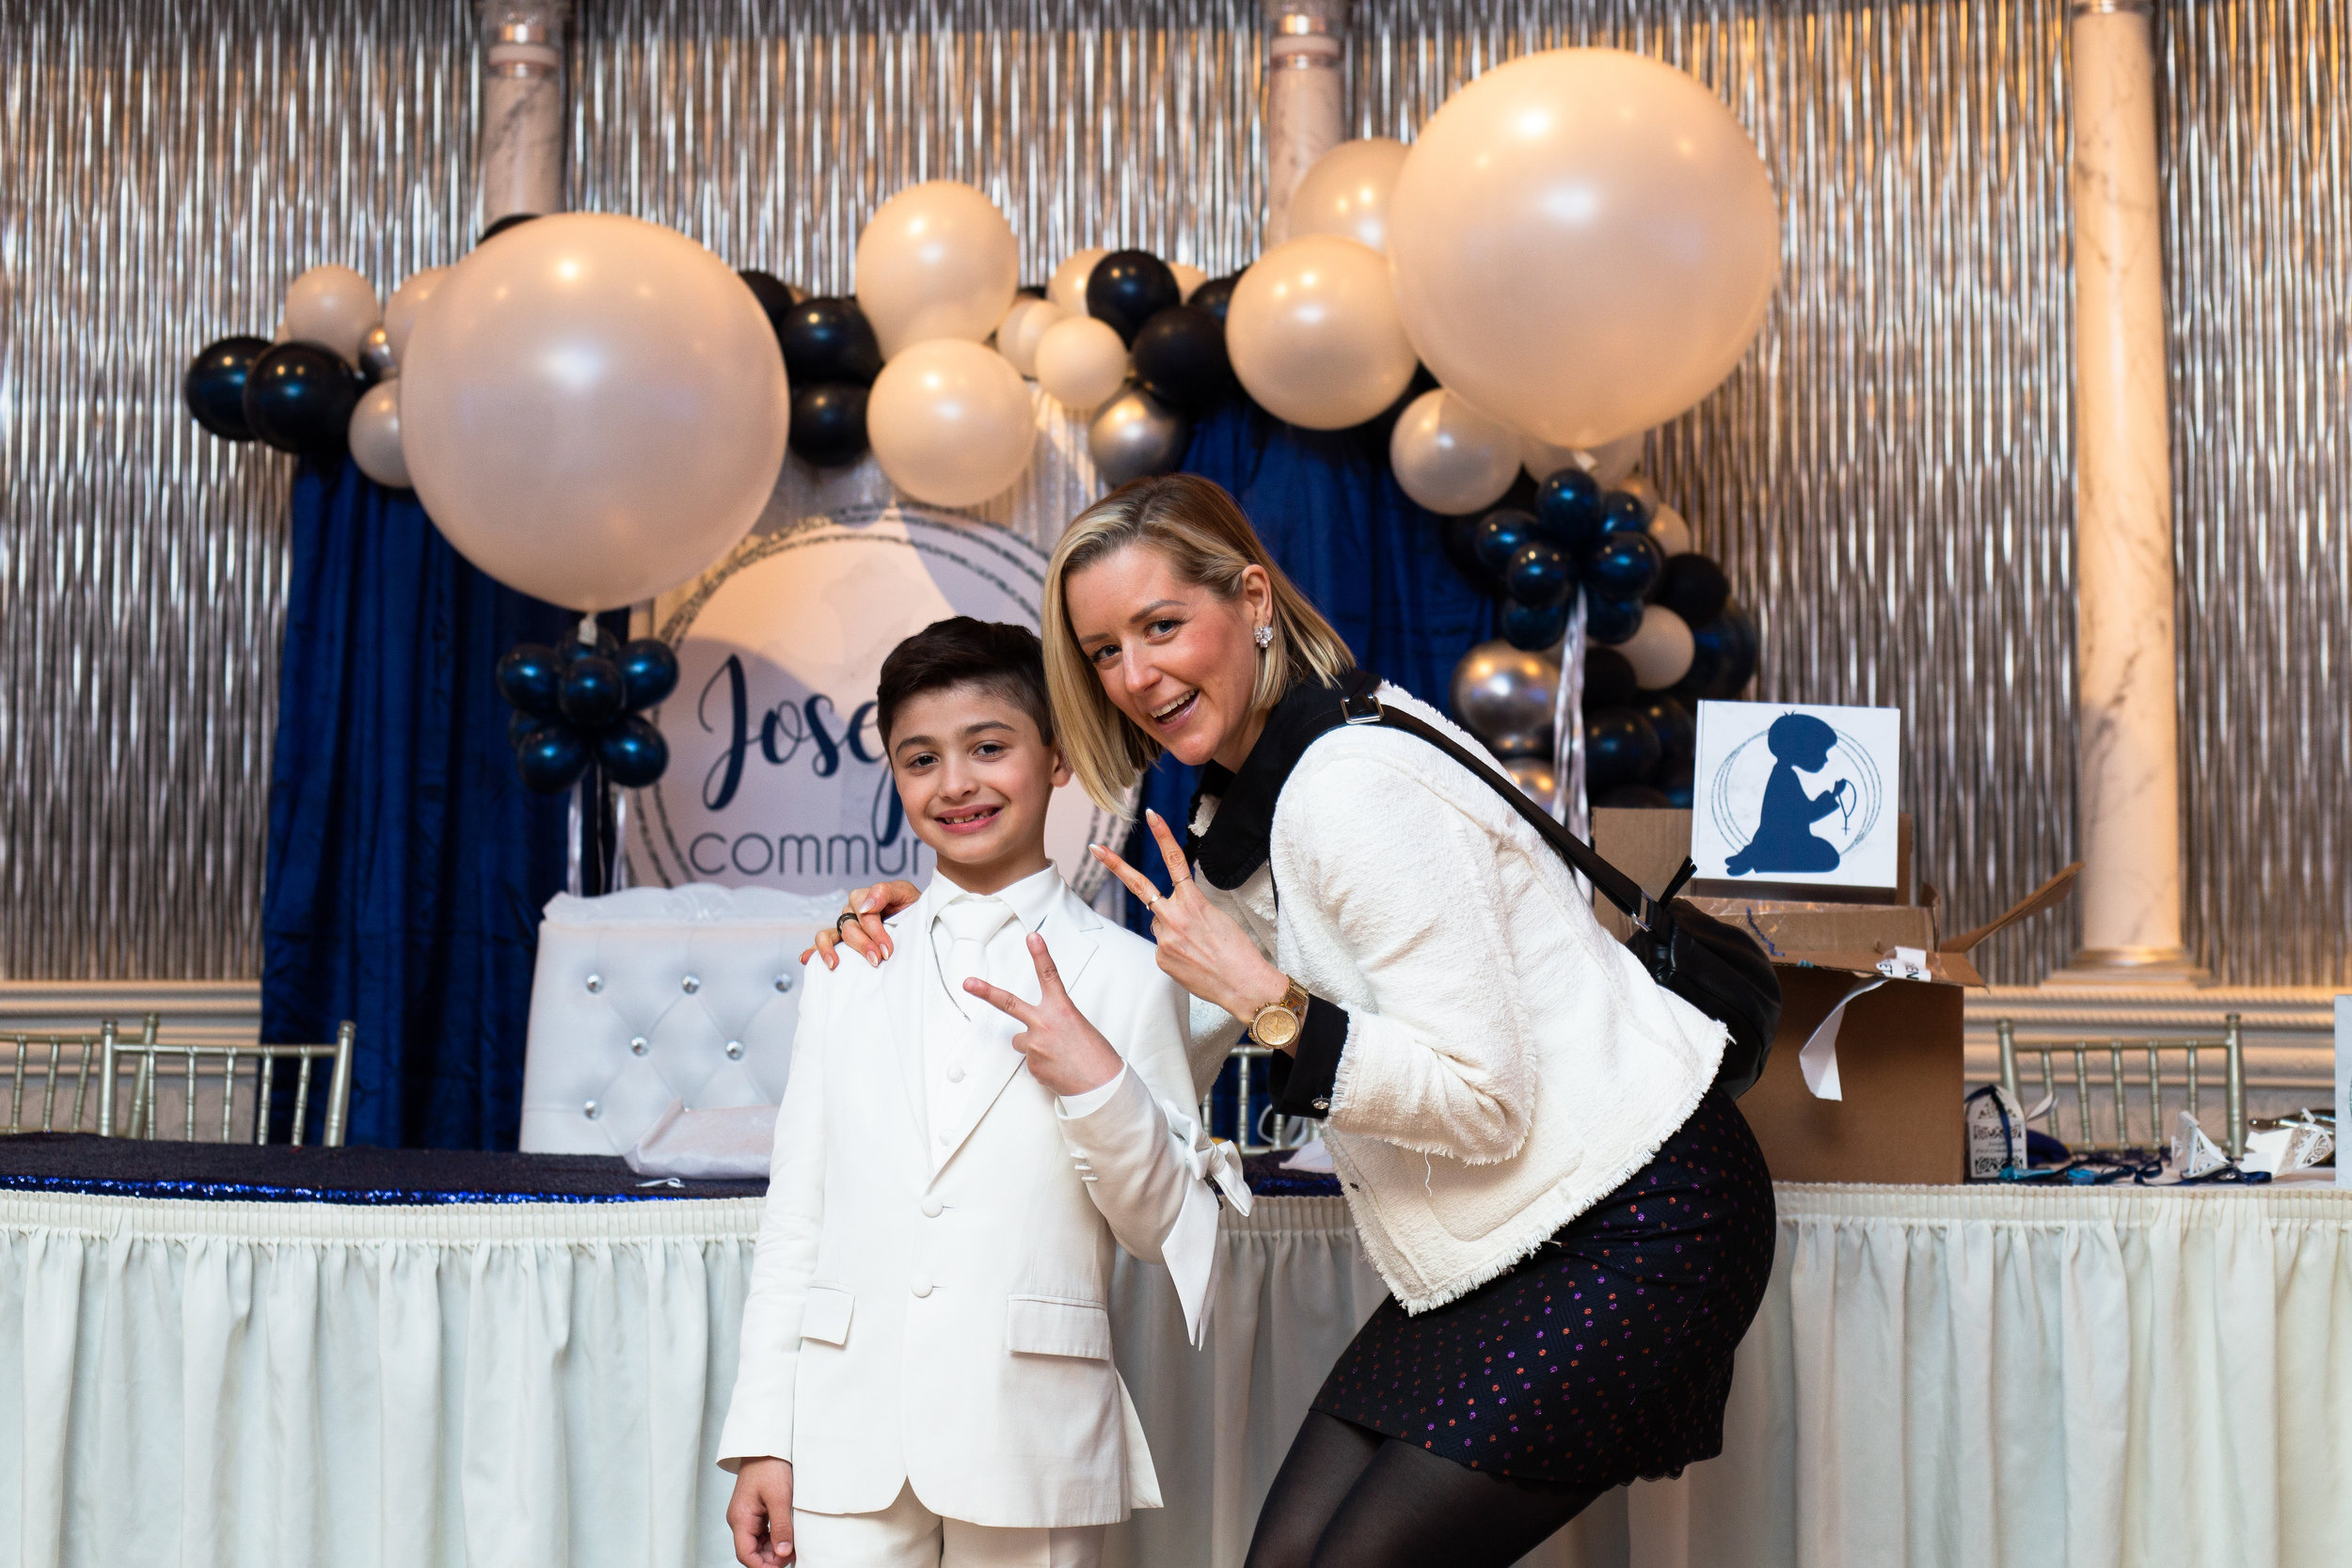 Joseph's First Communion 6.1.19.jpg